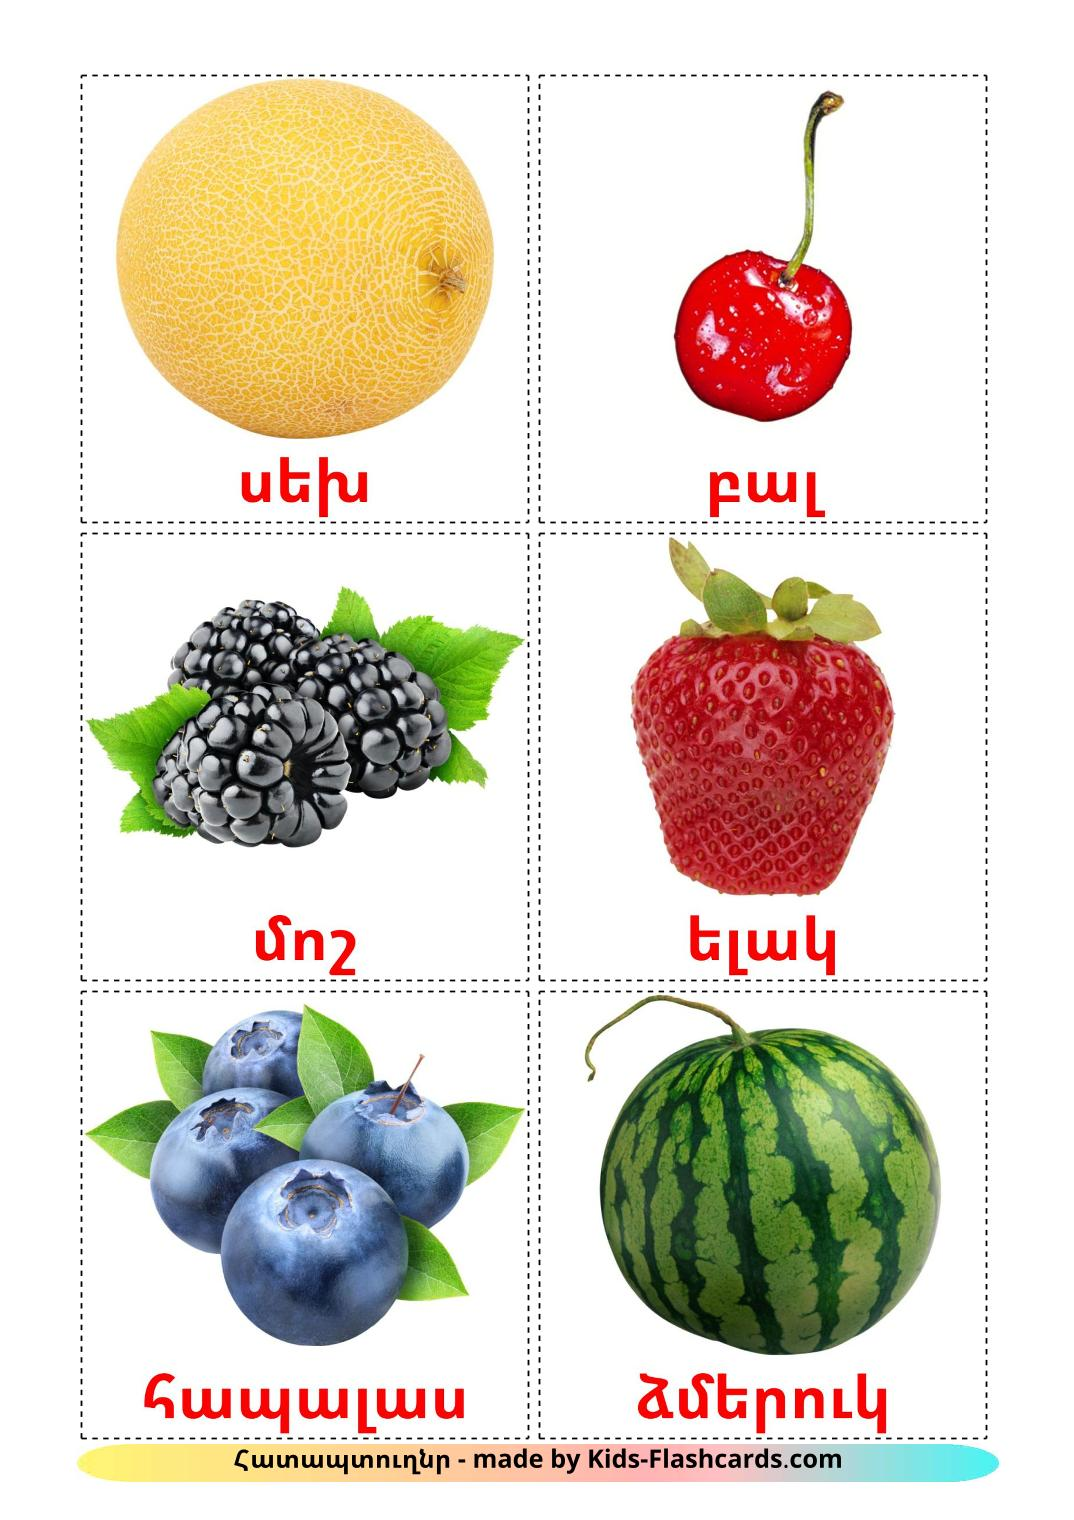 Berries - 11 Free Printable armenian Flashcards